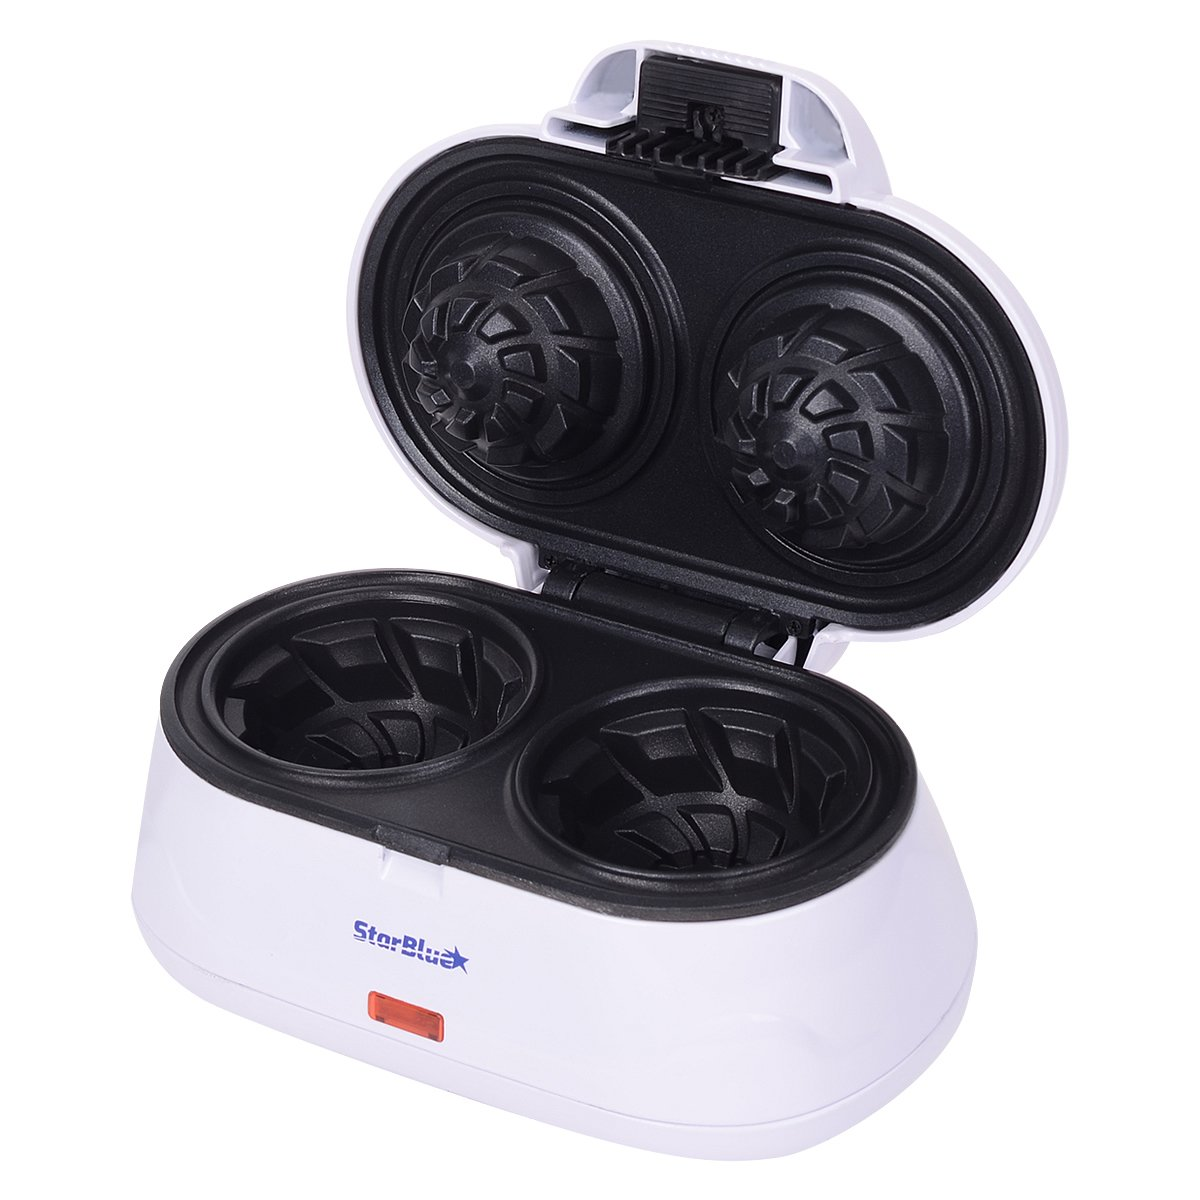 Double Waffle Bowl Maker by StarBlue - White - Make bowl shapes Belgian waffles in minutes | Best for serving ice cream and fruit | Gift ideas SB-SW2238D